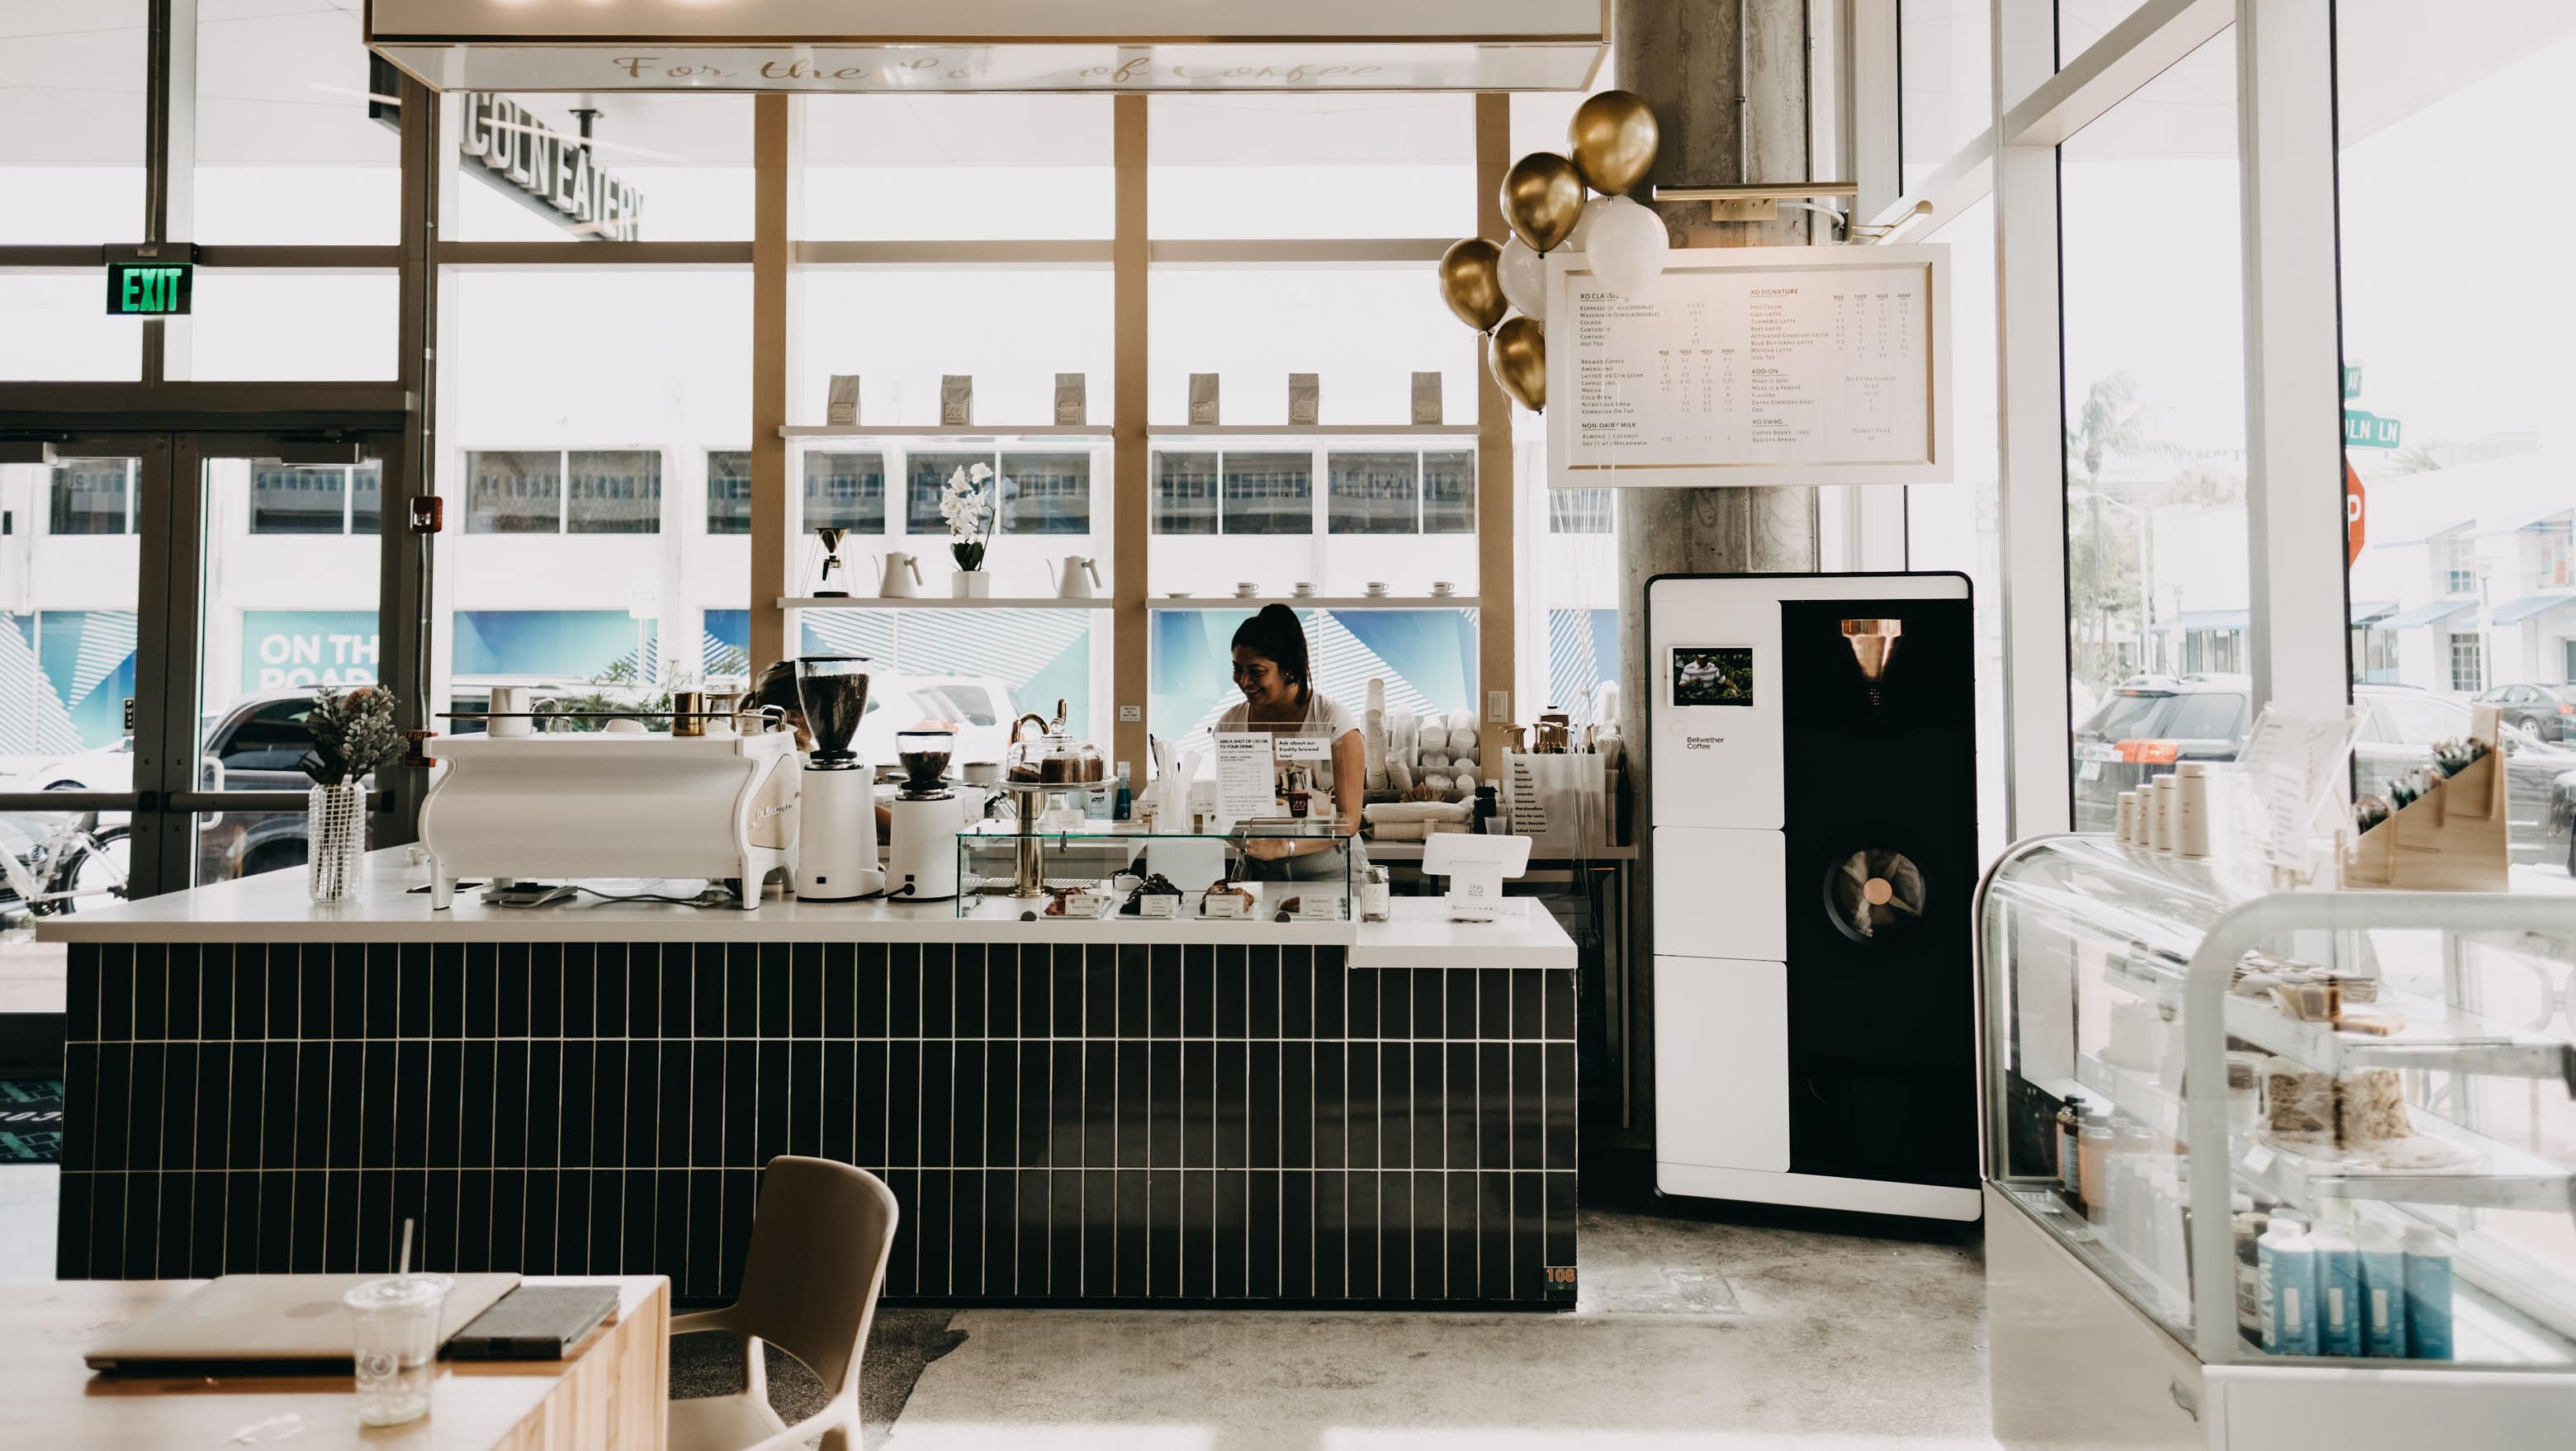 frog venture design services redefines coffee ecosystem for Bellwether